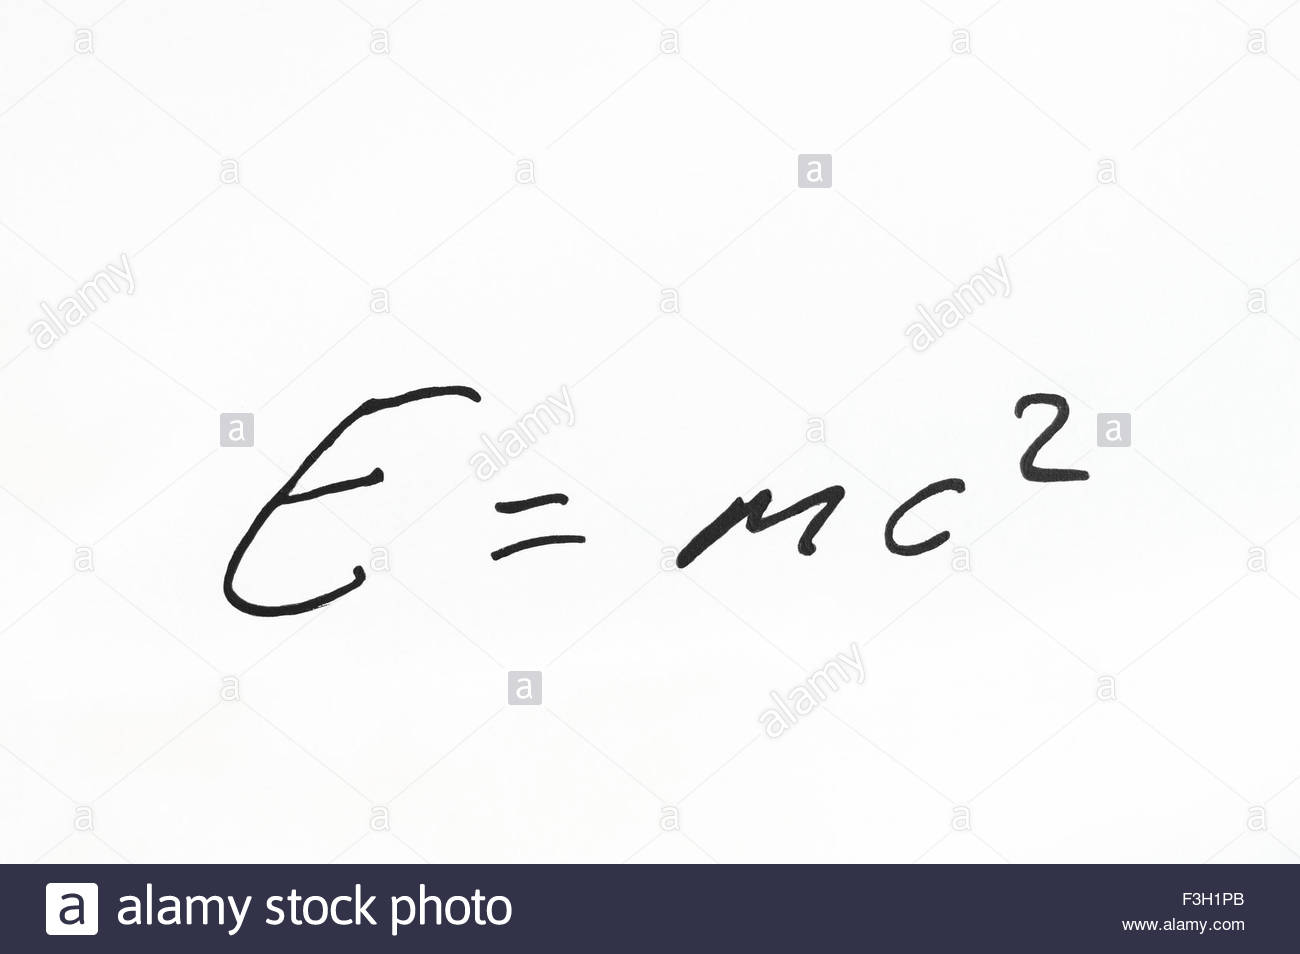 E=mc2 - Albert Einstein's special theory of relativity